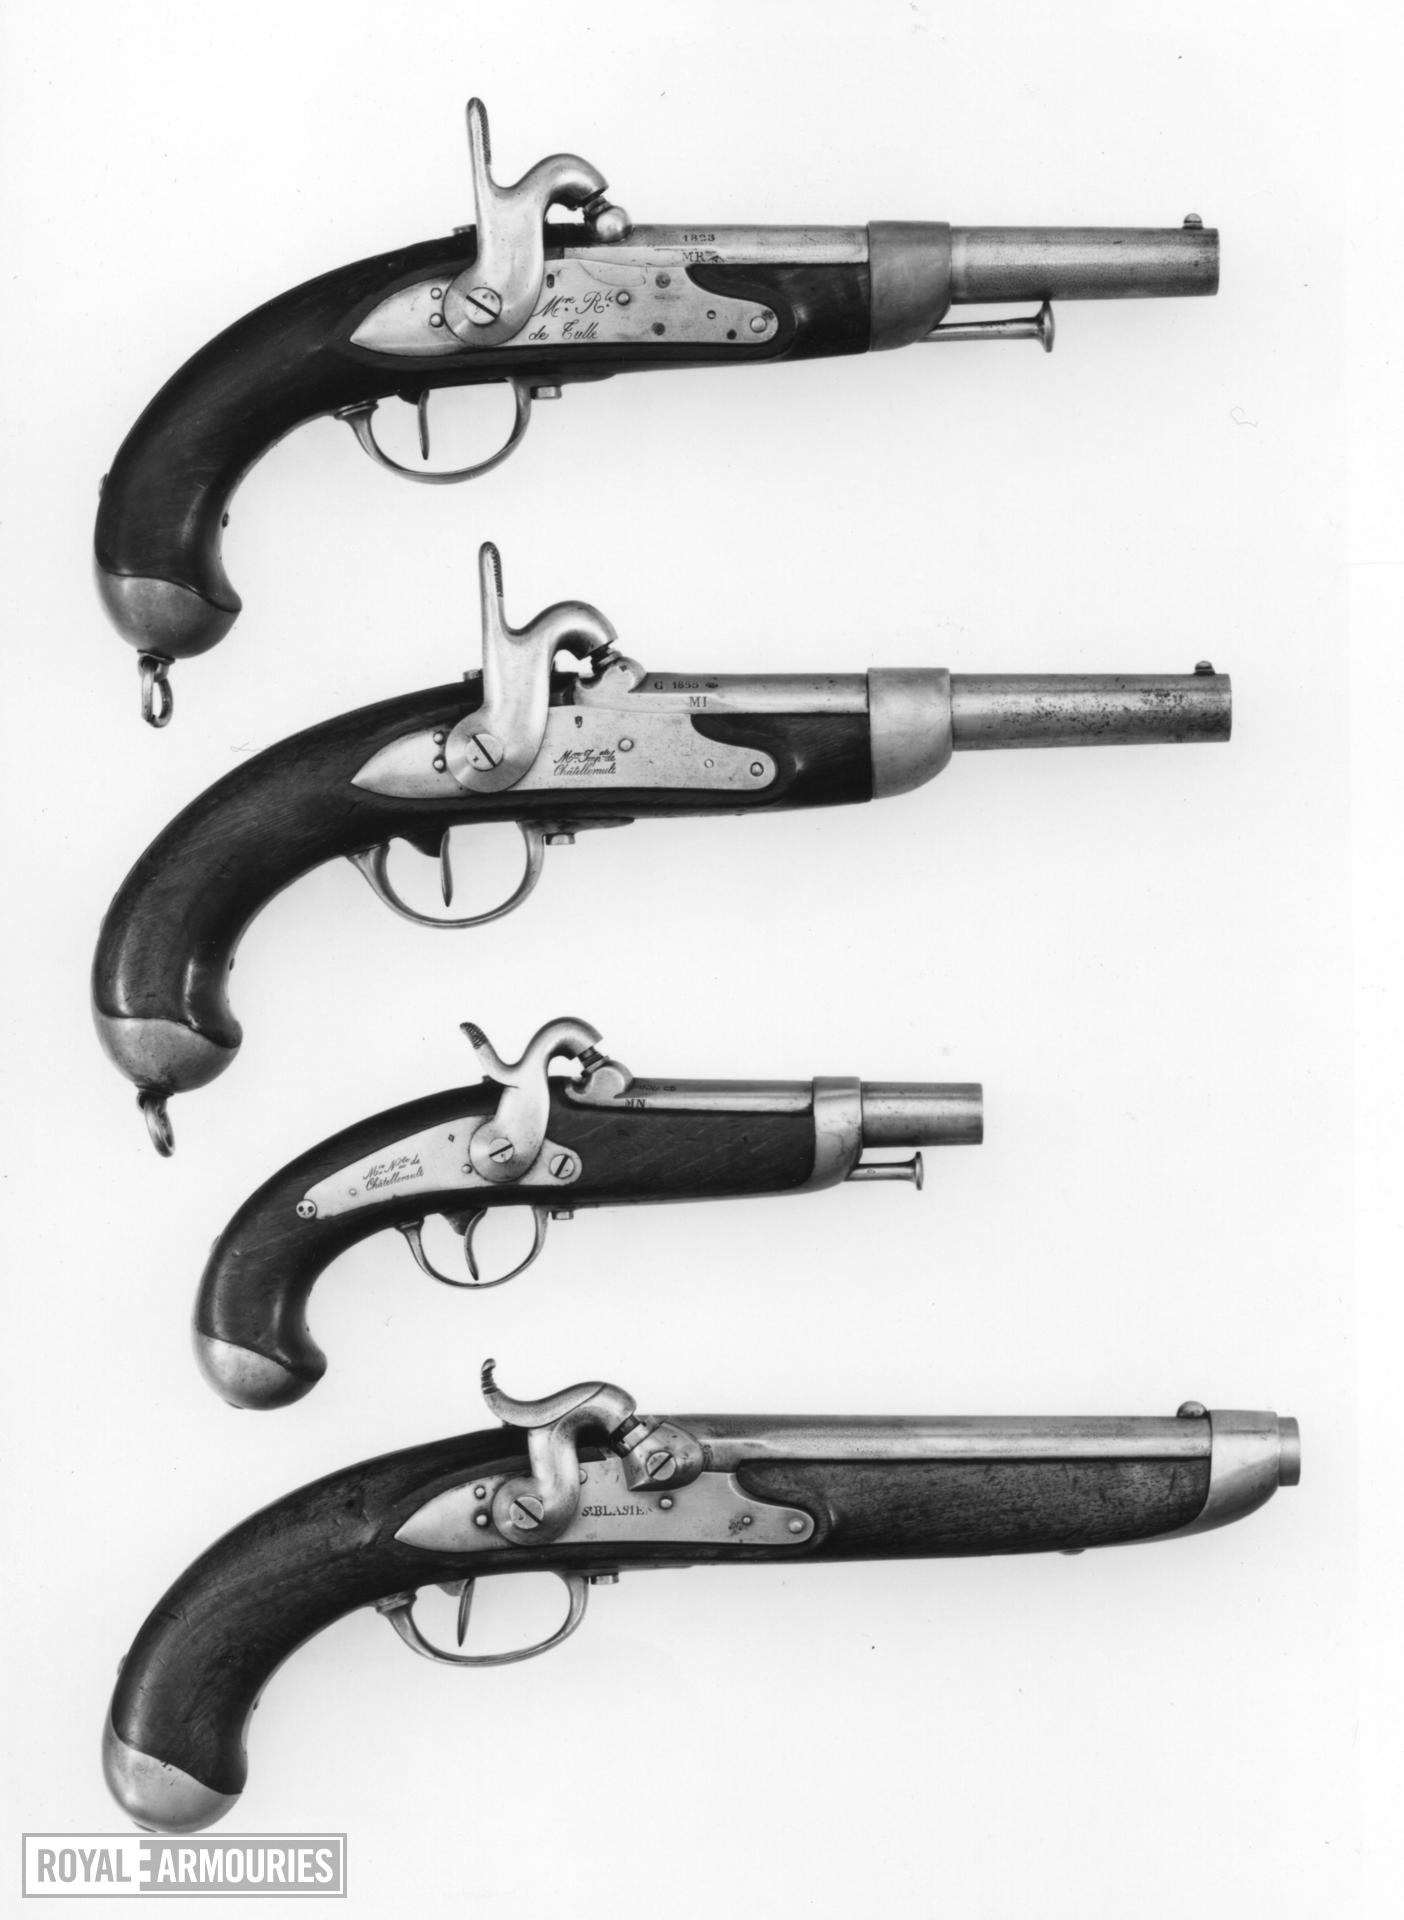 Percussion military pistol - Model 1822 Cavalry Manufactured by Royale de Tulle, converted in 1841